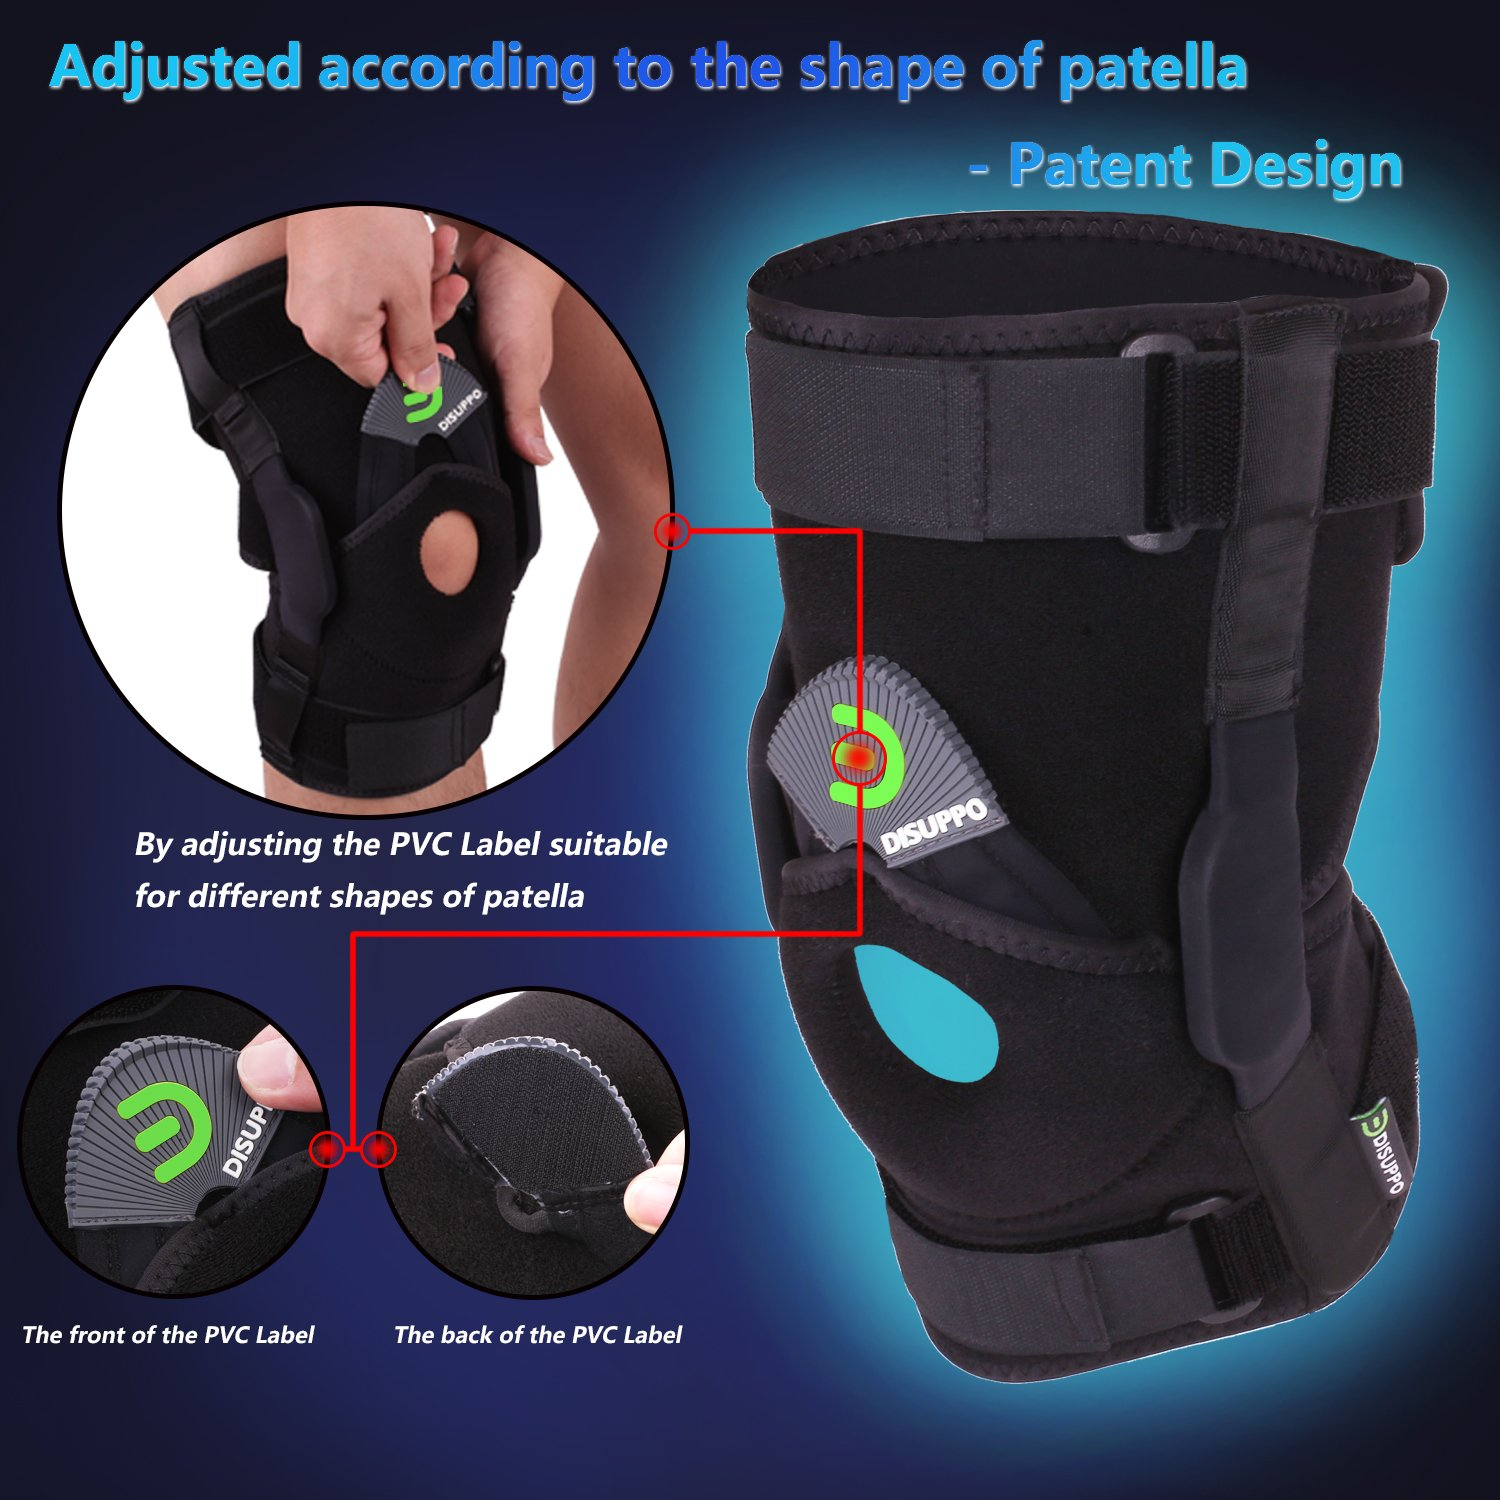 af035733c6 Amazon.com: Dual Hinged Knee Brace Open Stabilized Patella Adjustable  Support for Sports Trauma, Sprains, Arthritis, ACL, Meniscus Tears,  Ligament Injuries ...